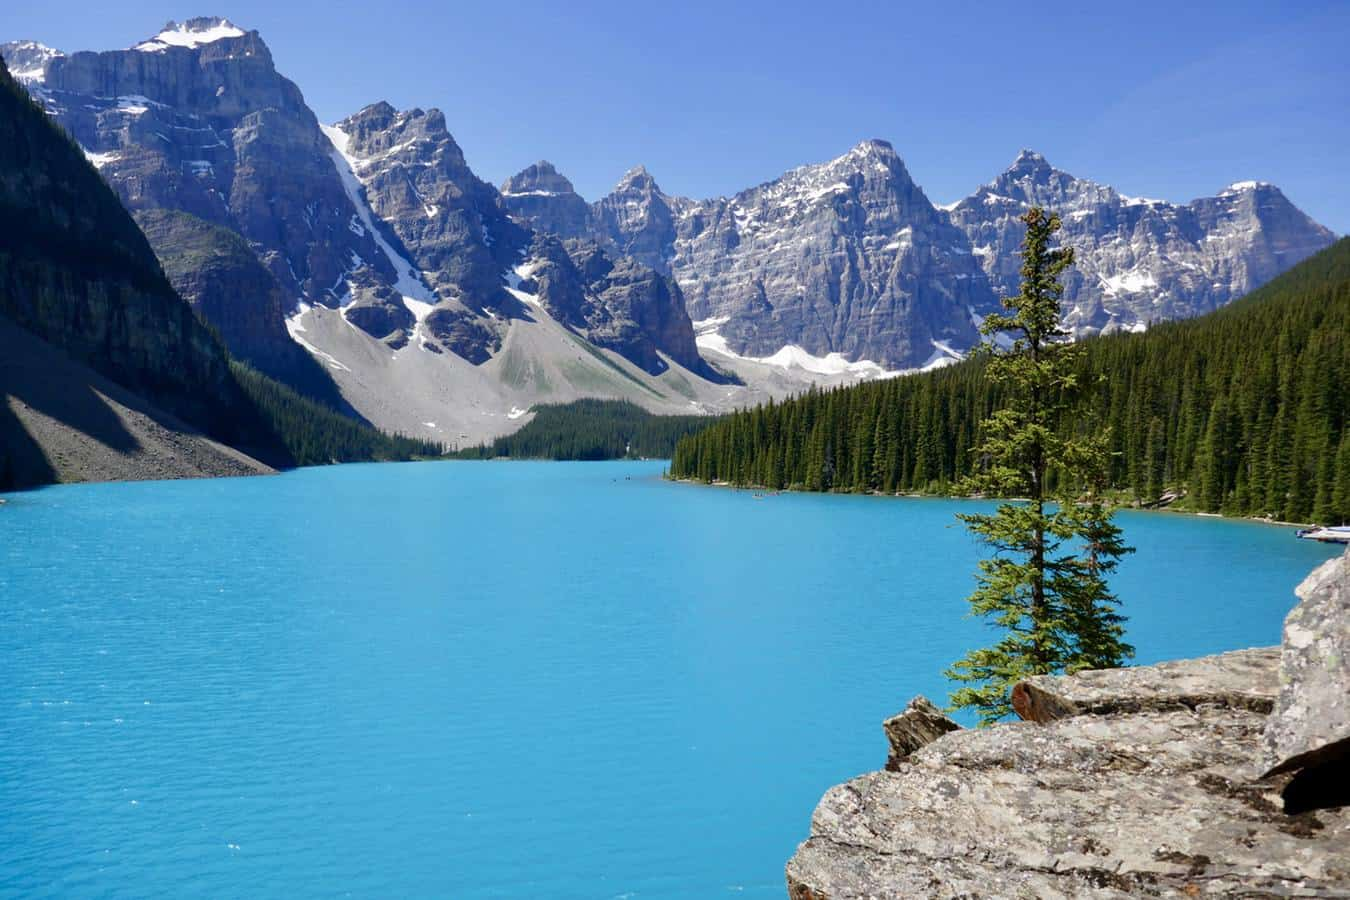 Blue lake in front of snowy mountains and pine tress